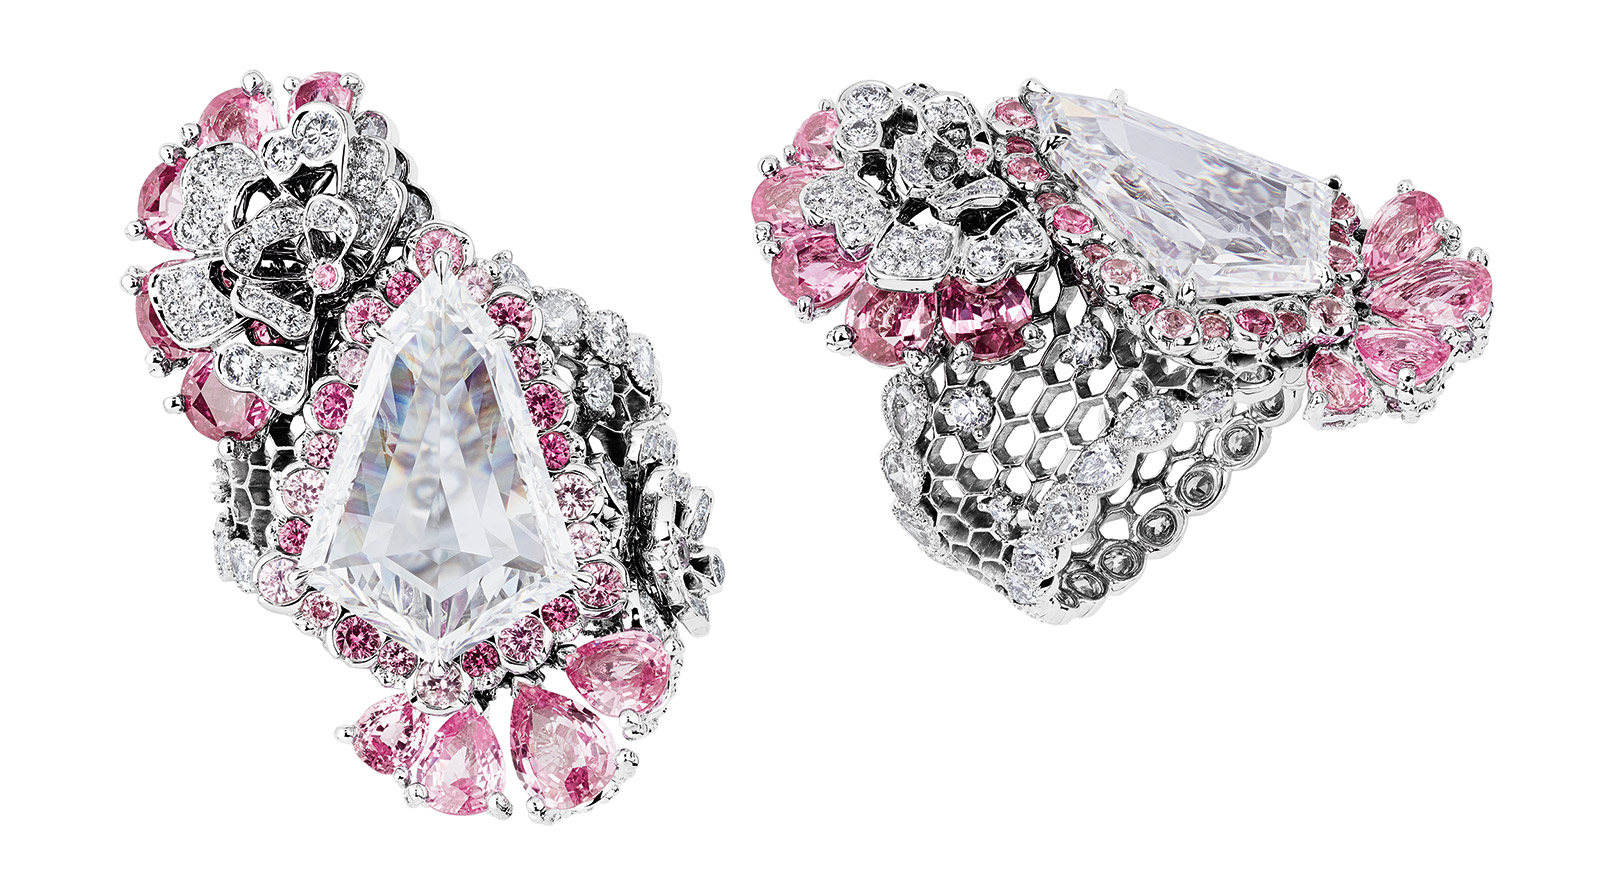 Dior 'Dentelle Organza' ring from the 'Dior Dior Dior' collection, with 5.07ct shield / bullet cut diamond, pink sapphires and accenting diamonds